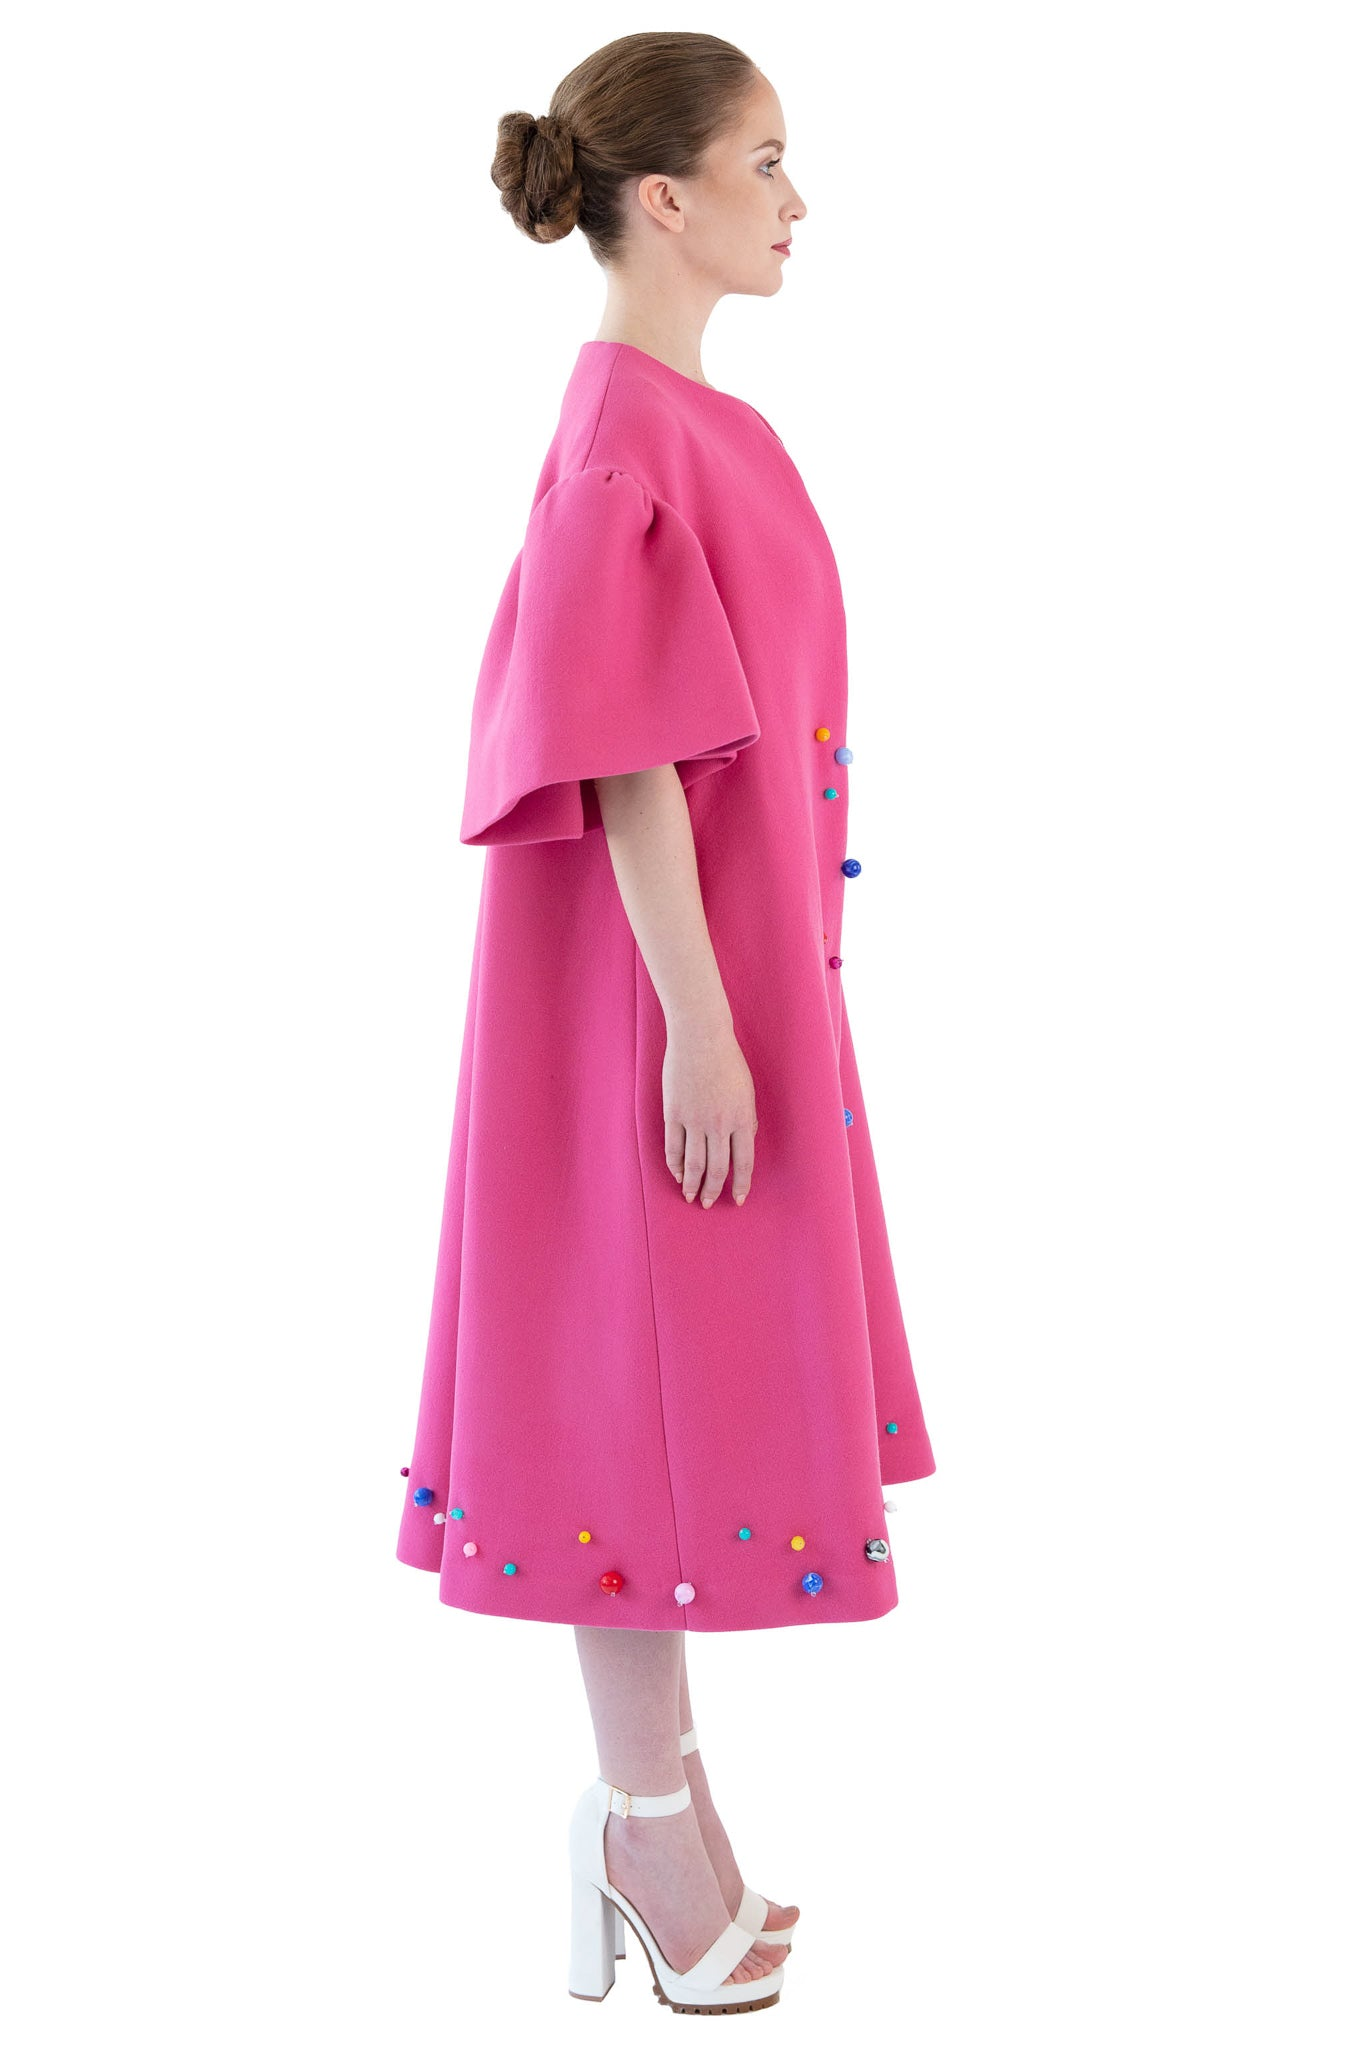 Side view of women's pink beaded opera coat with bell sleeves